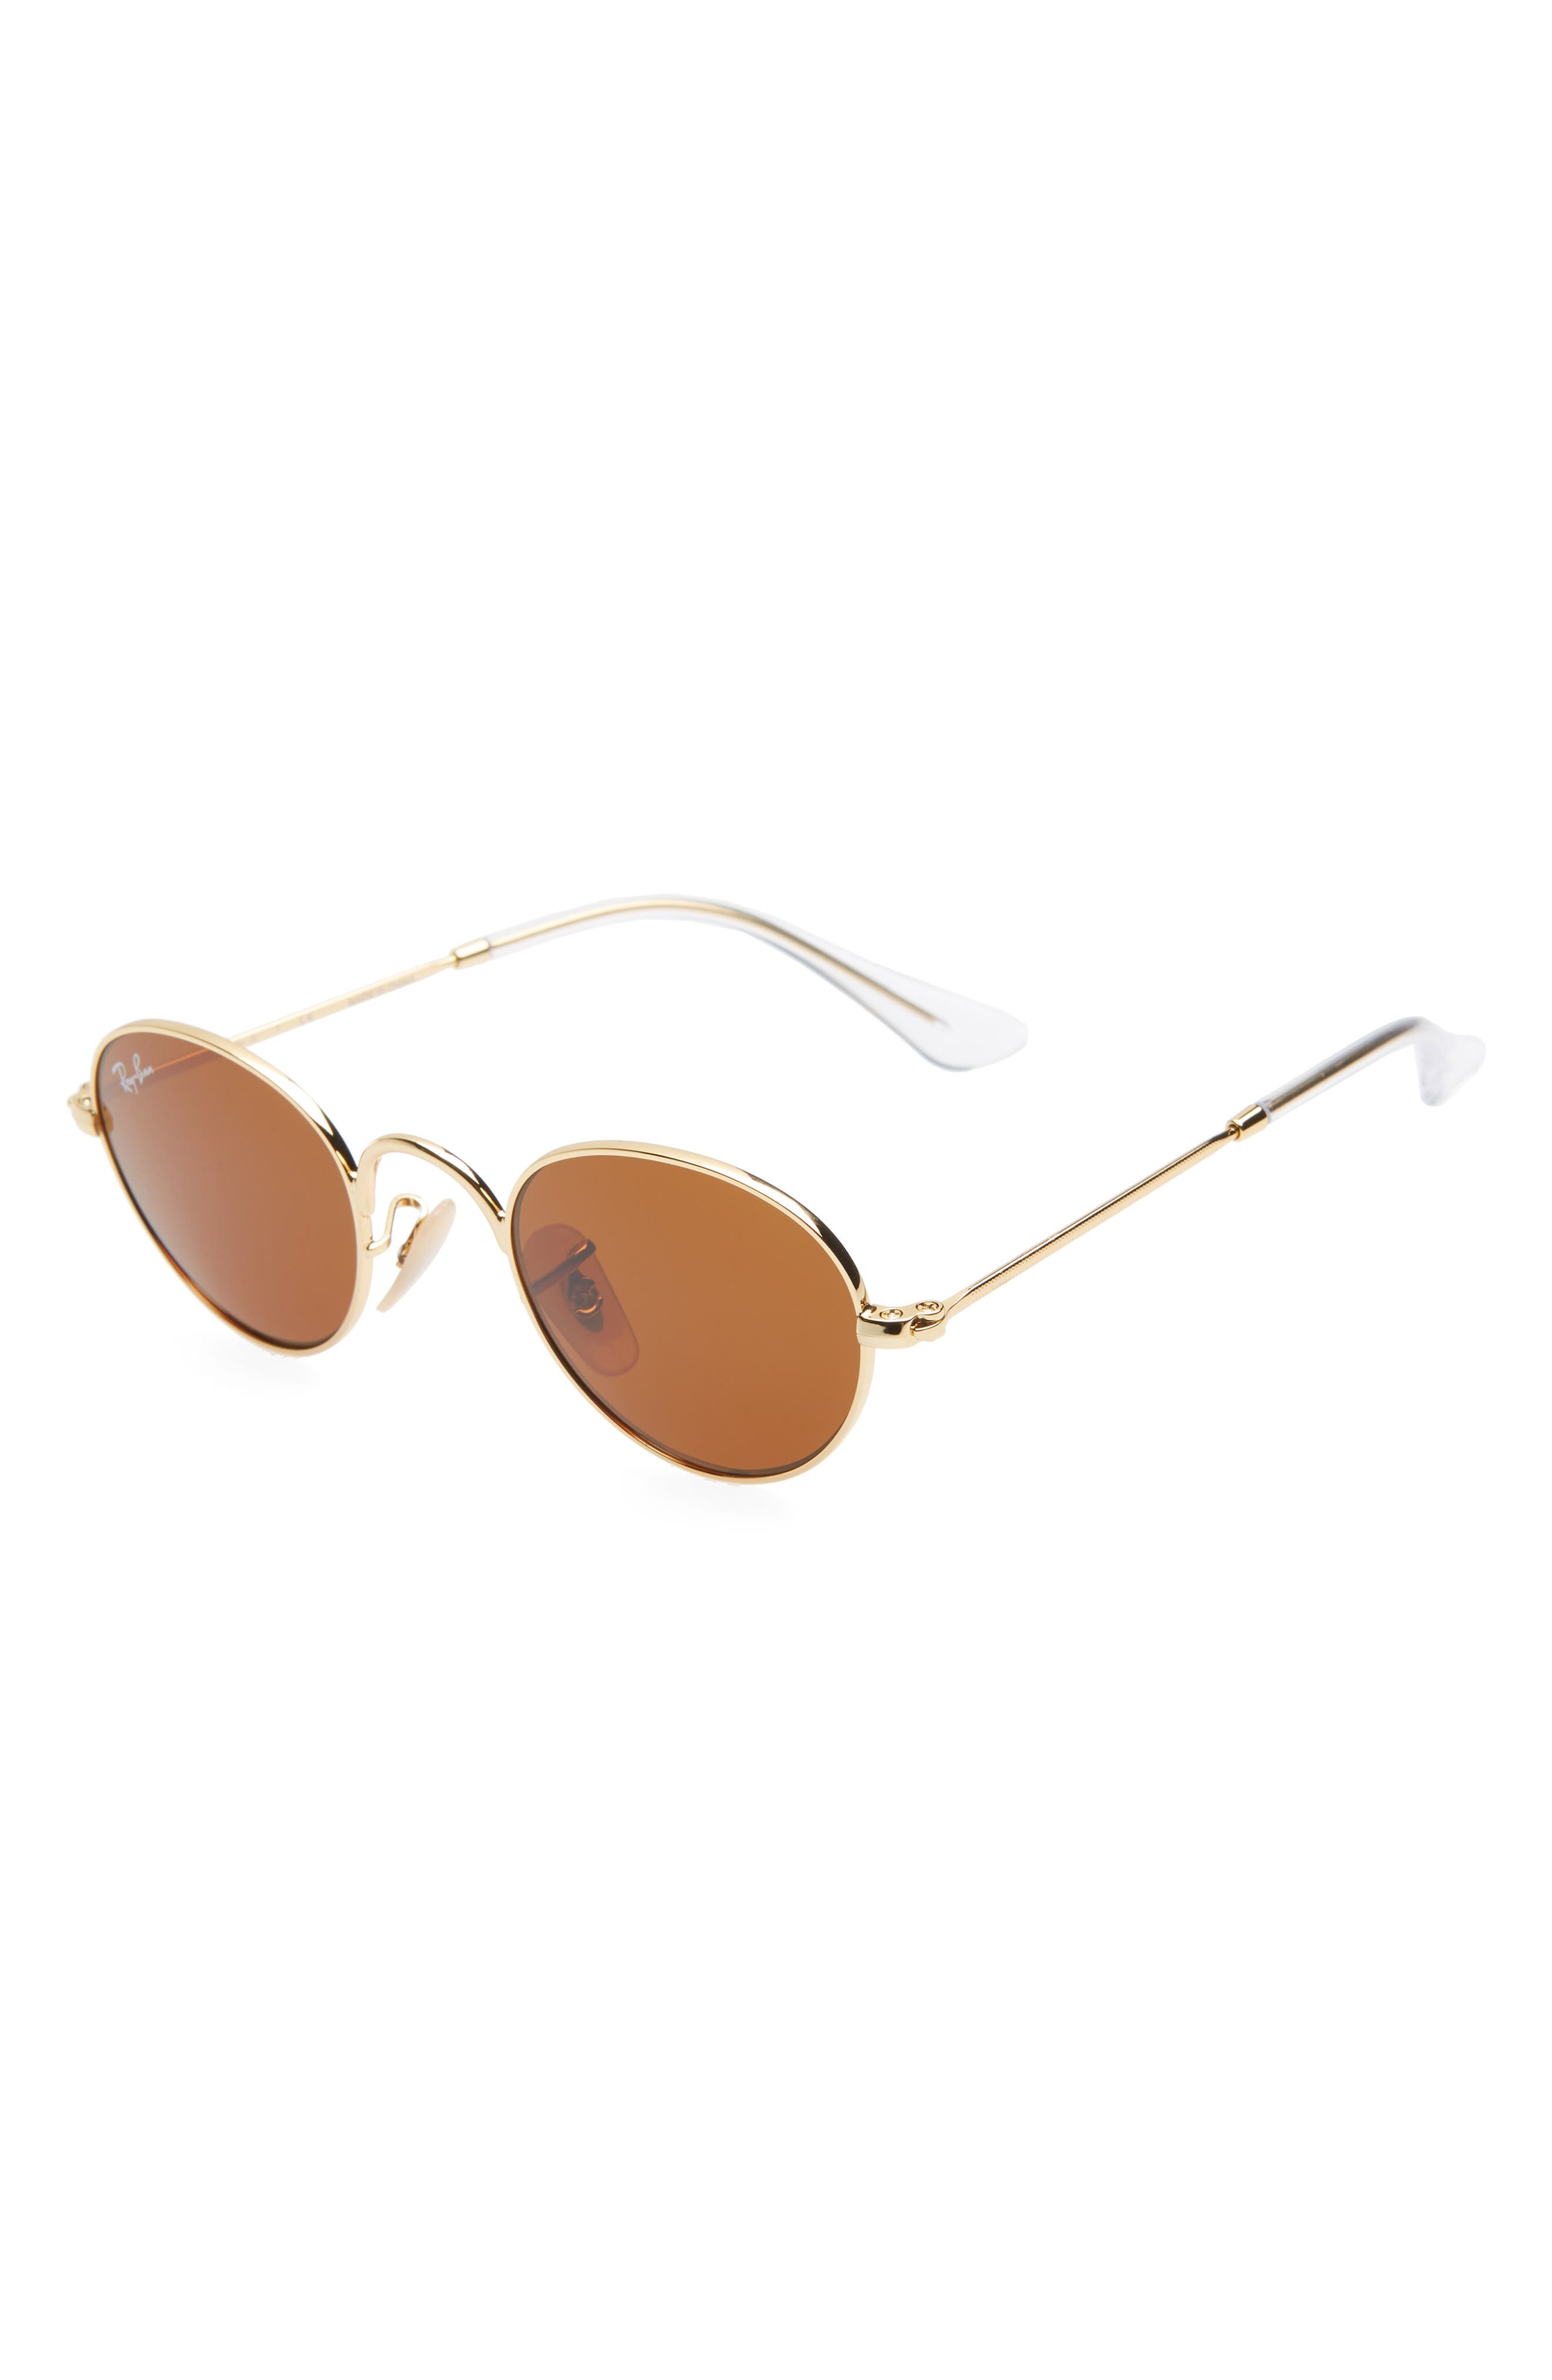 Lennon Junior 40mm Round Sunglasses, Main, color, GOLD/ BROWN SOLID